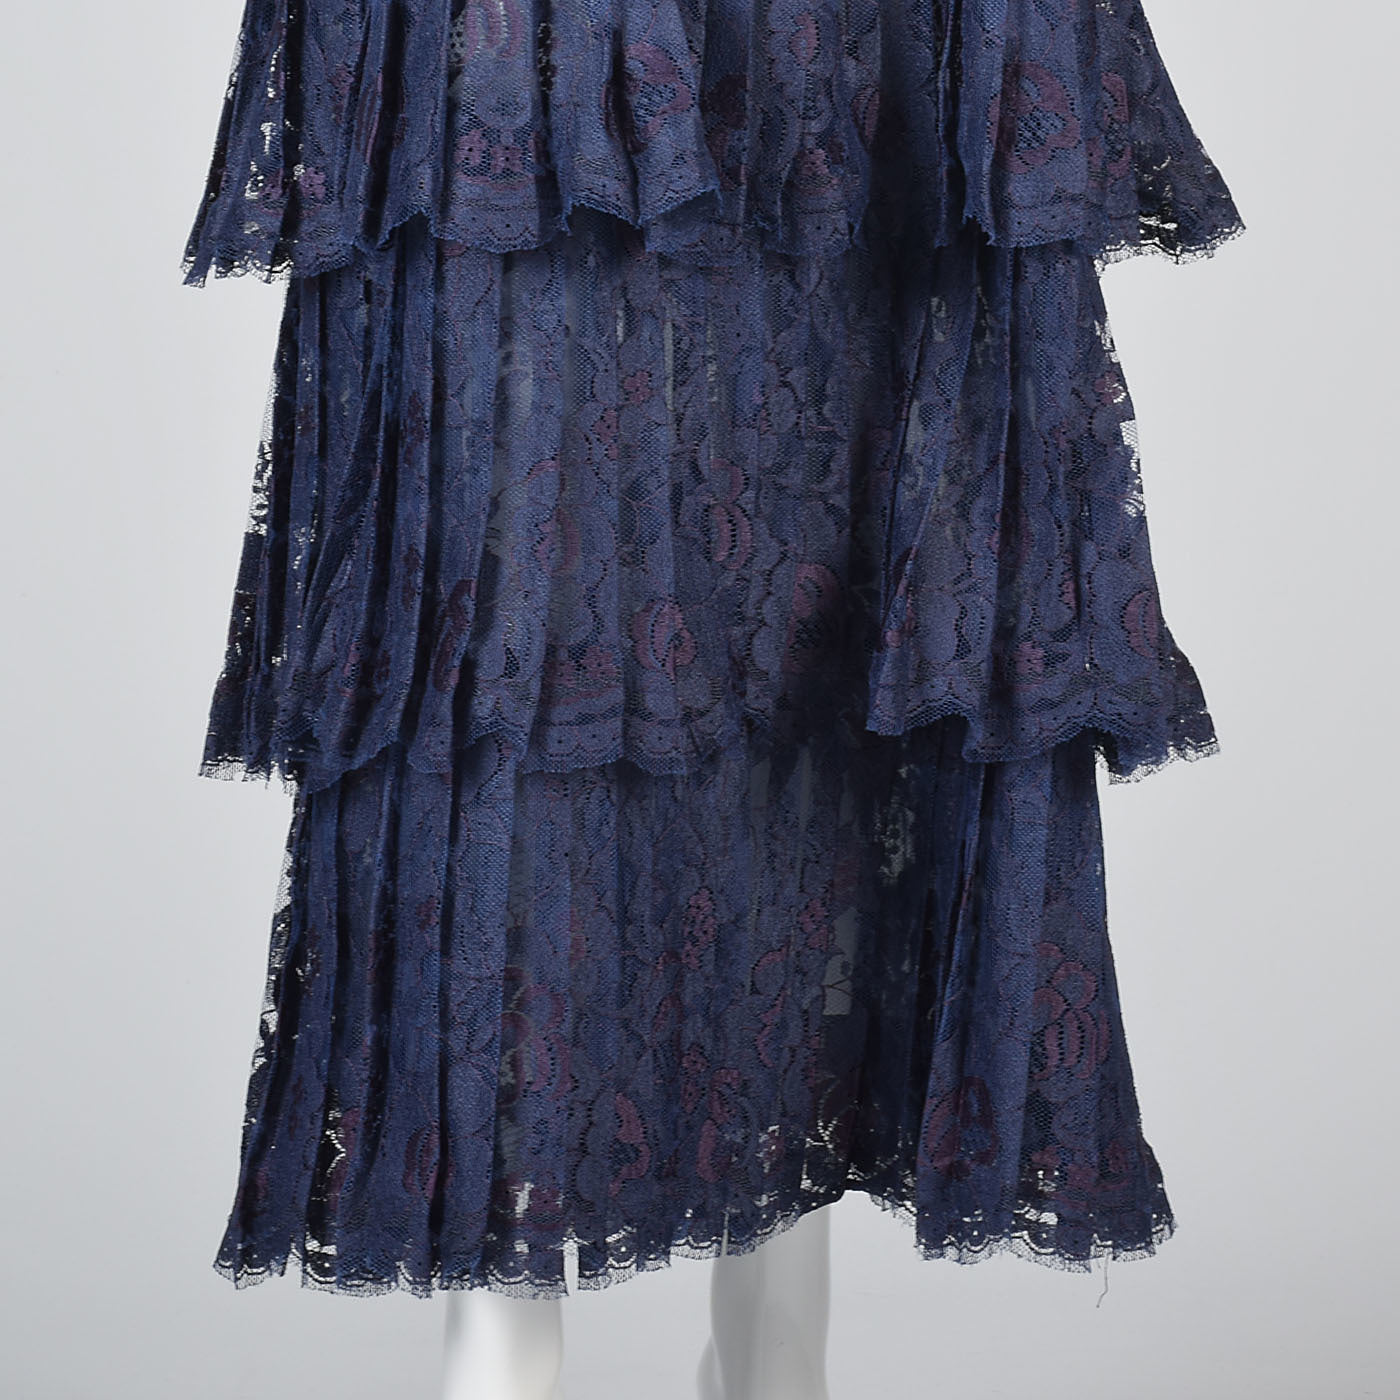 1970s Scaasi Boutique Navy Blue Formal Lace Evening Dress